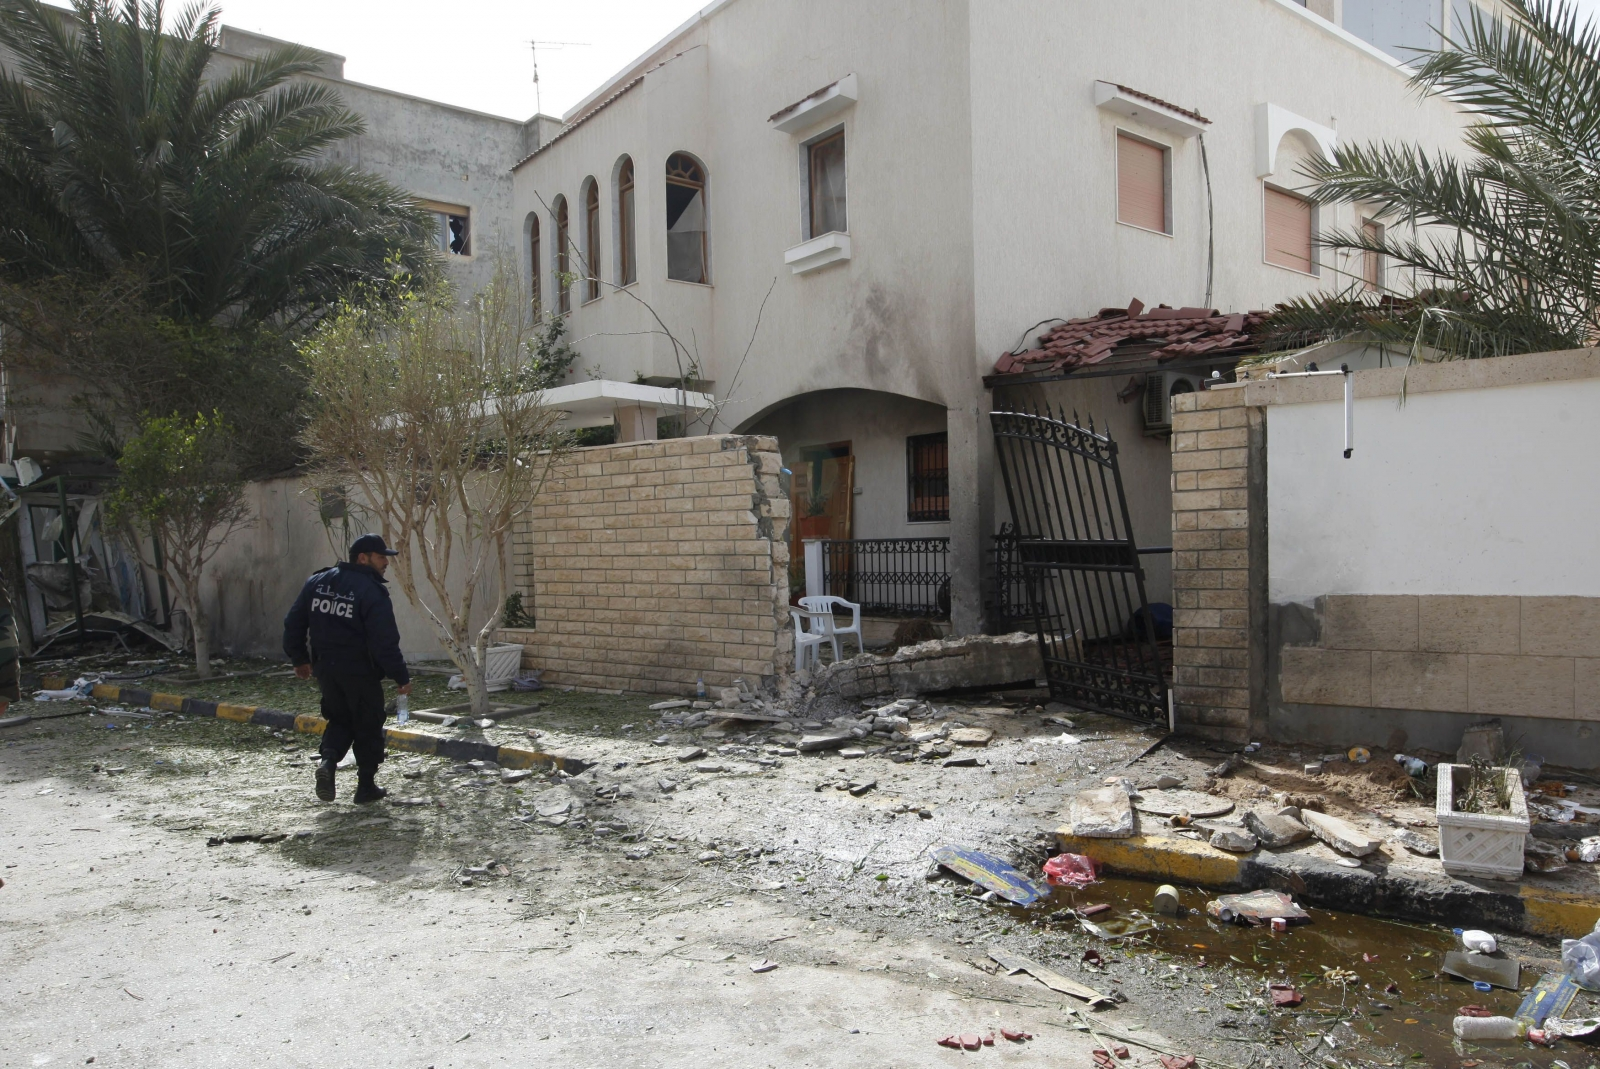 The damage caused by today's bomb attack on Iran's embassy in Tripoli, Libya. (Reuters)